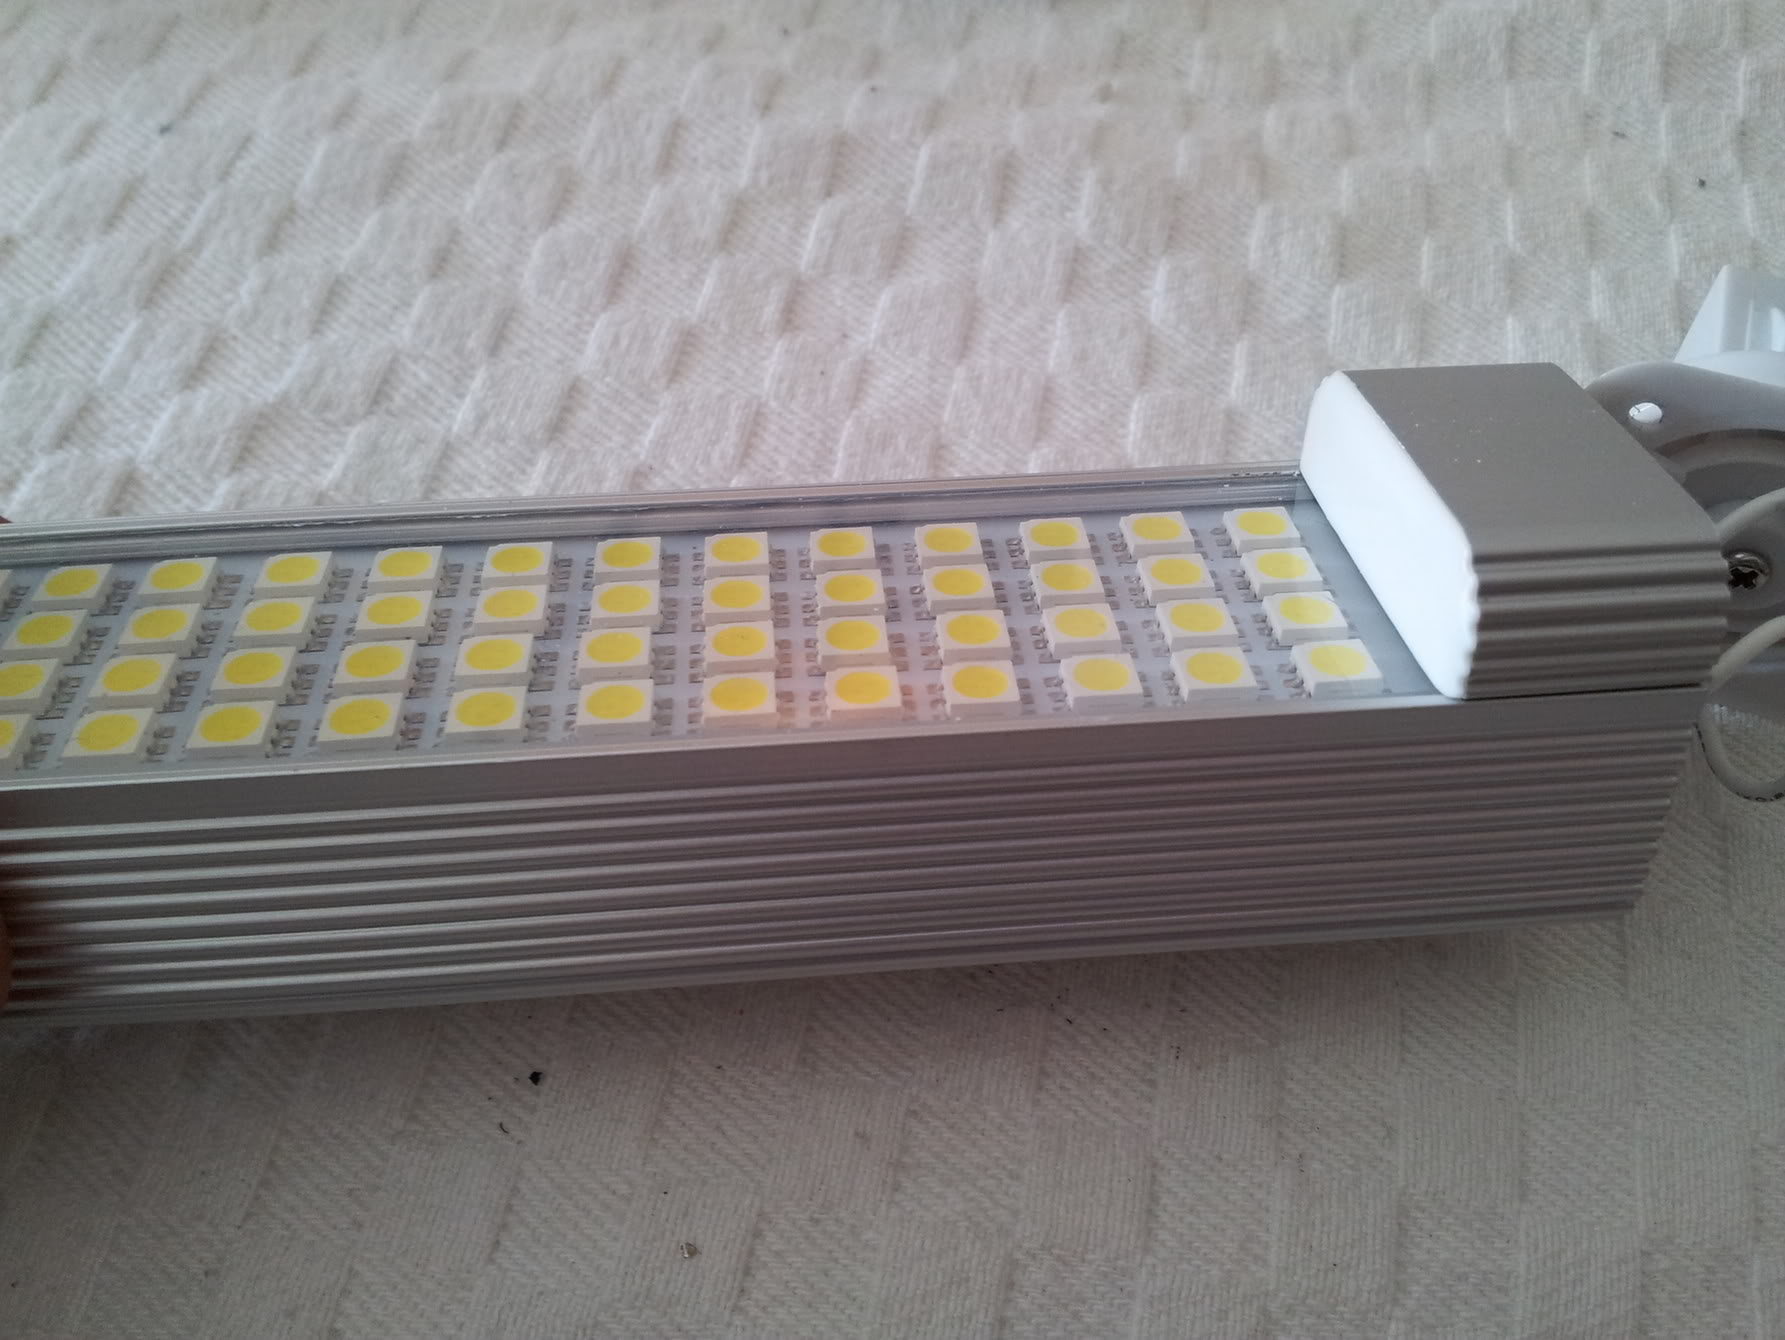 Adaptation Ampoule LED 11W pour nano 2012-03-03142814